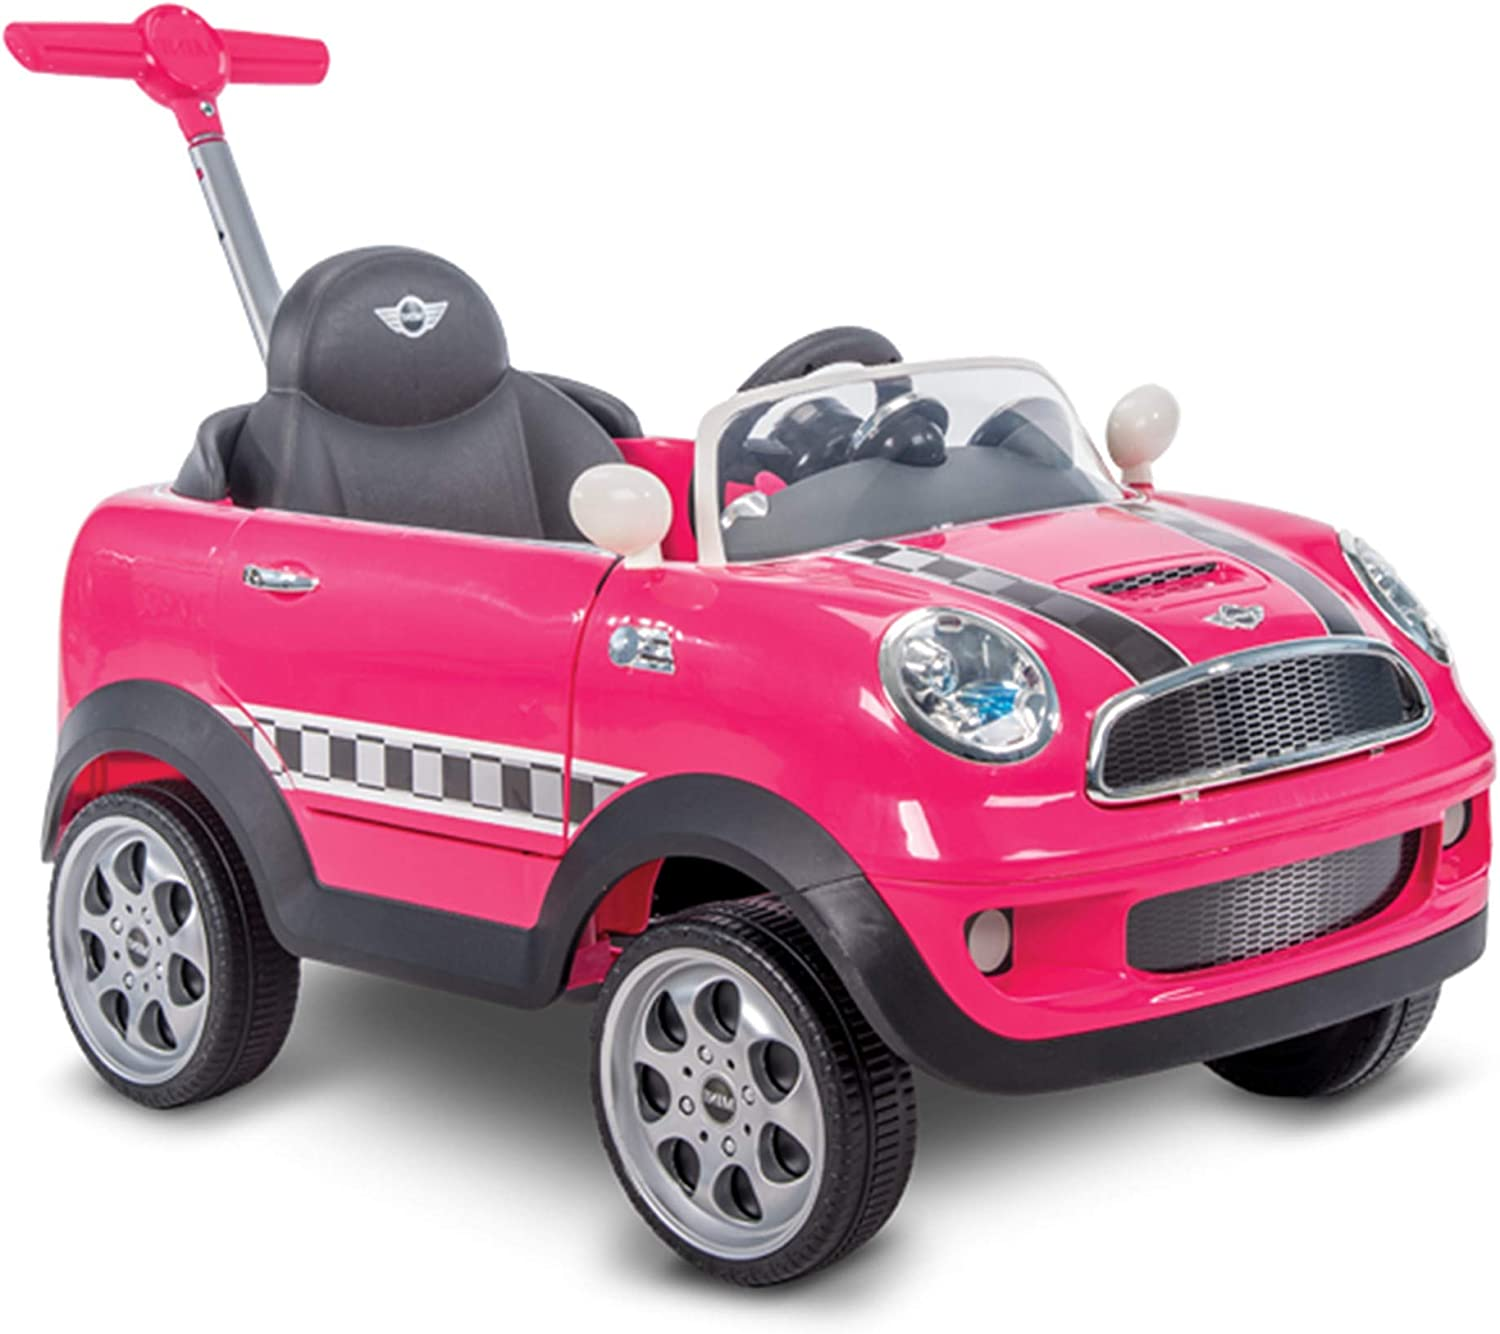 Huffy Mini Cooper for Kids Ride On Car W/ Push Stroller, Pink